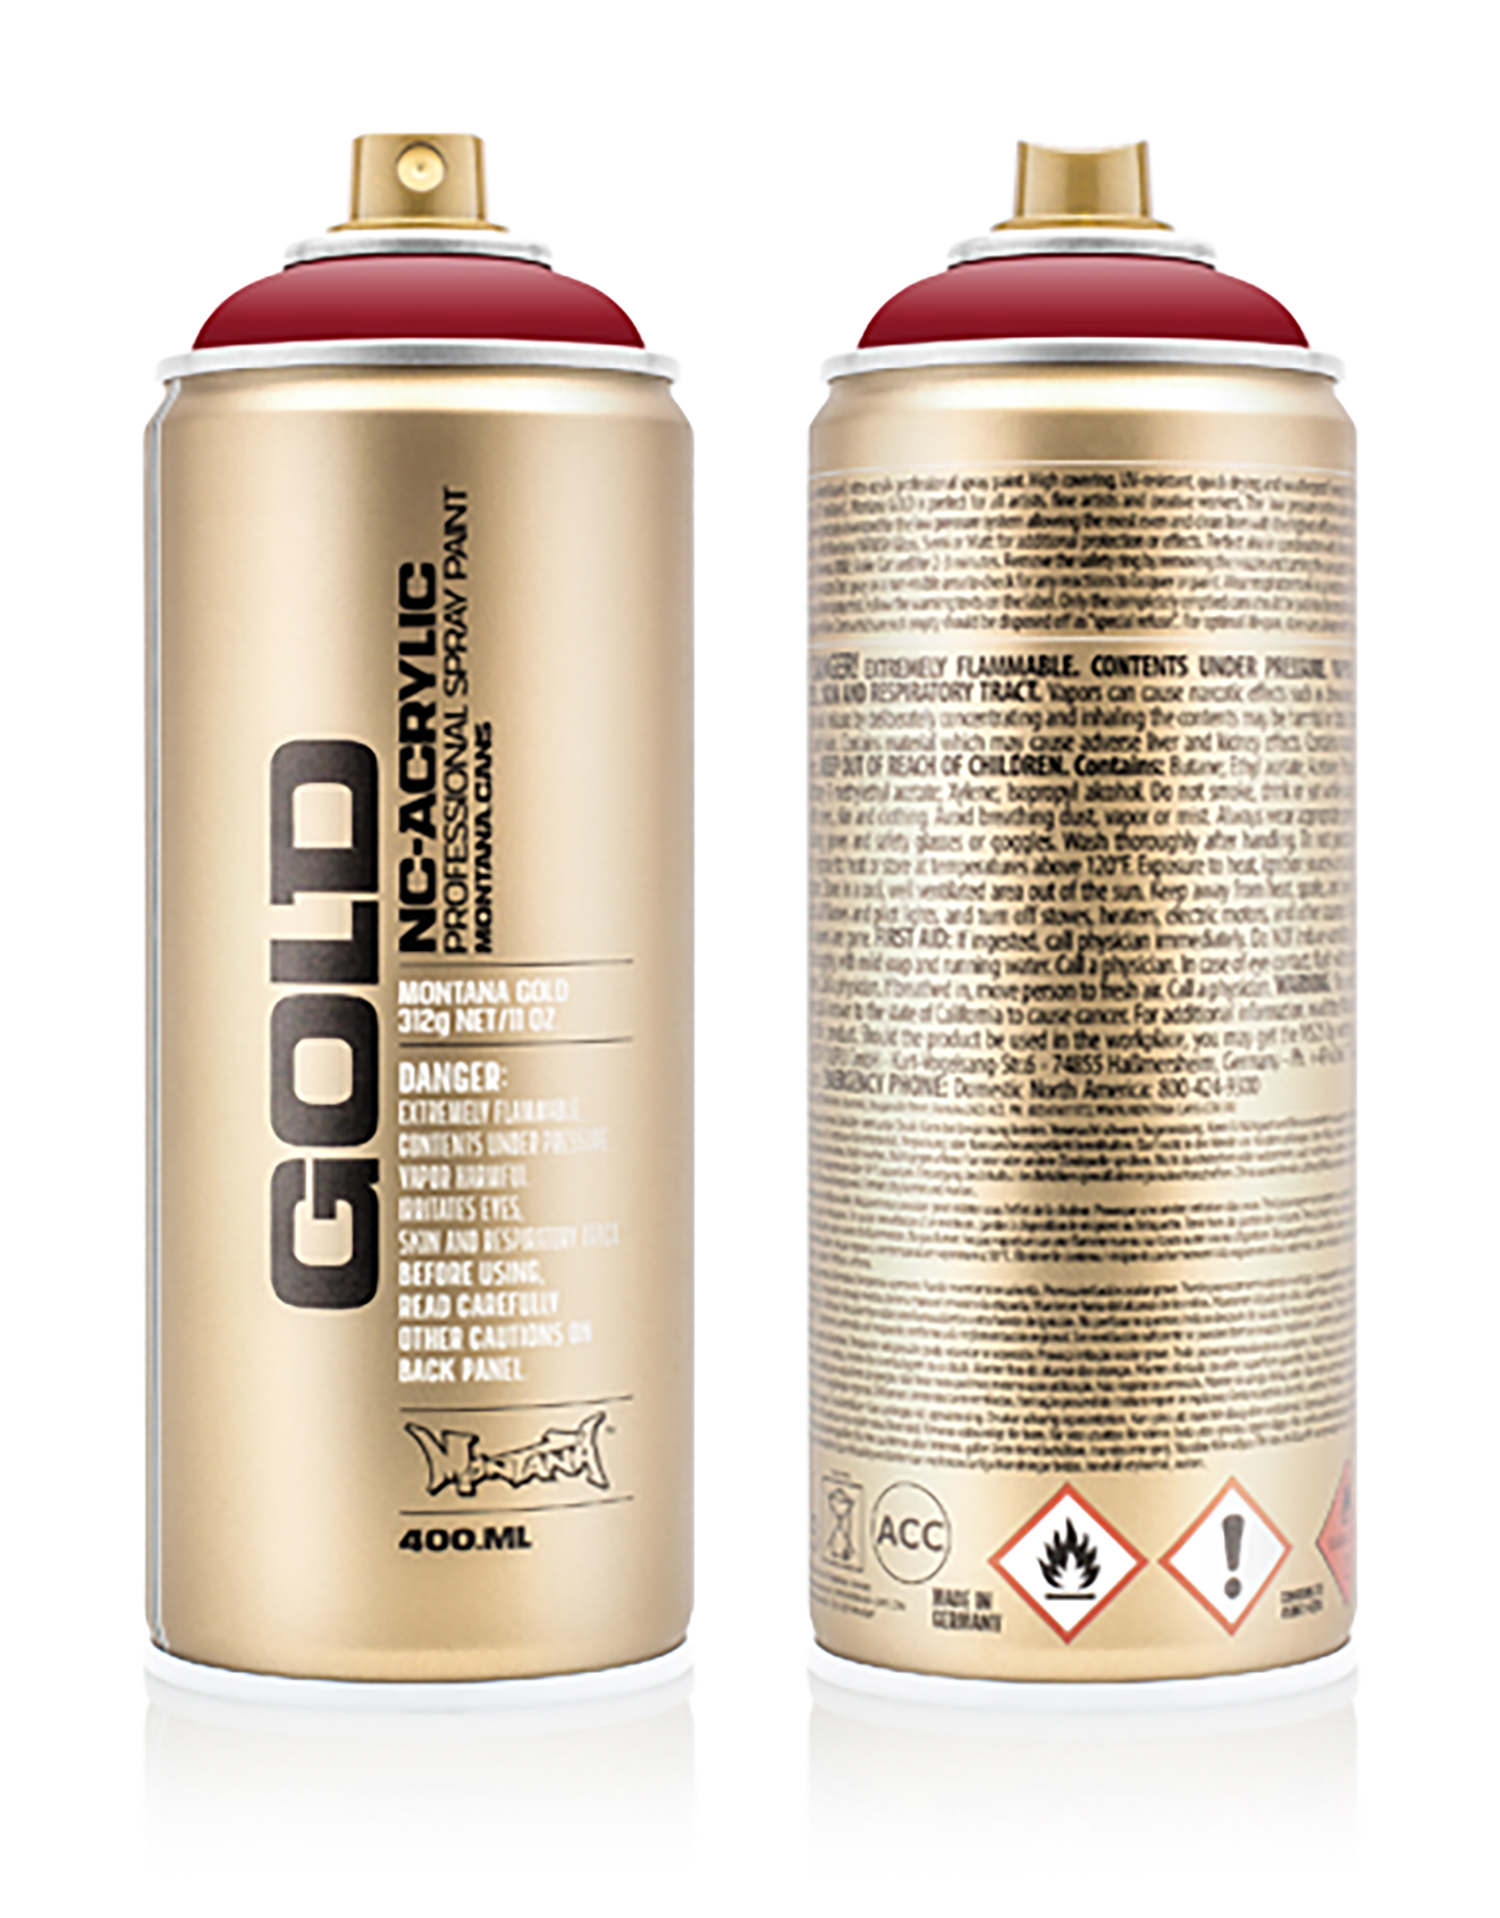 MONTANA-GOLD-SPRAY-400ML-G-3050